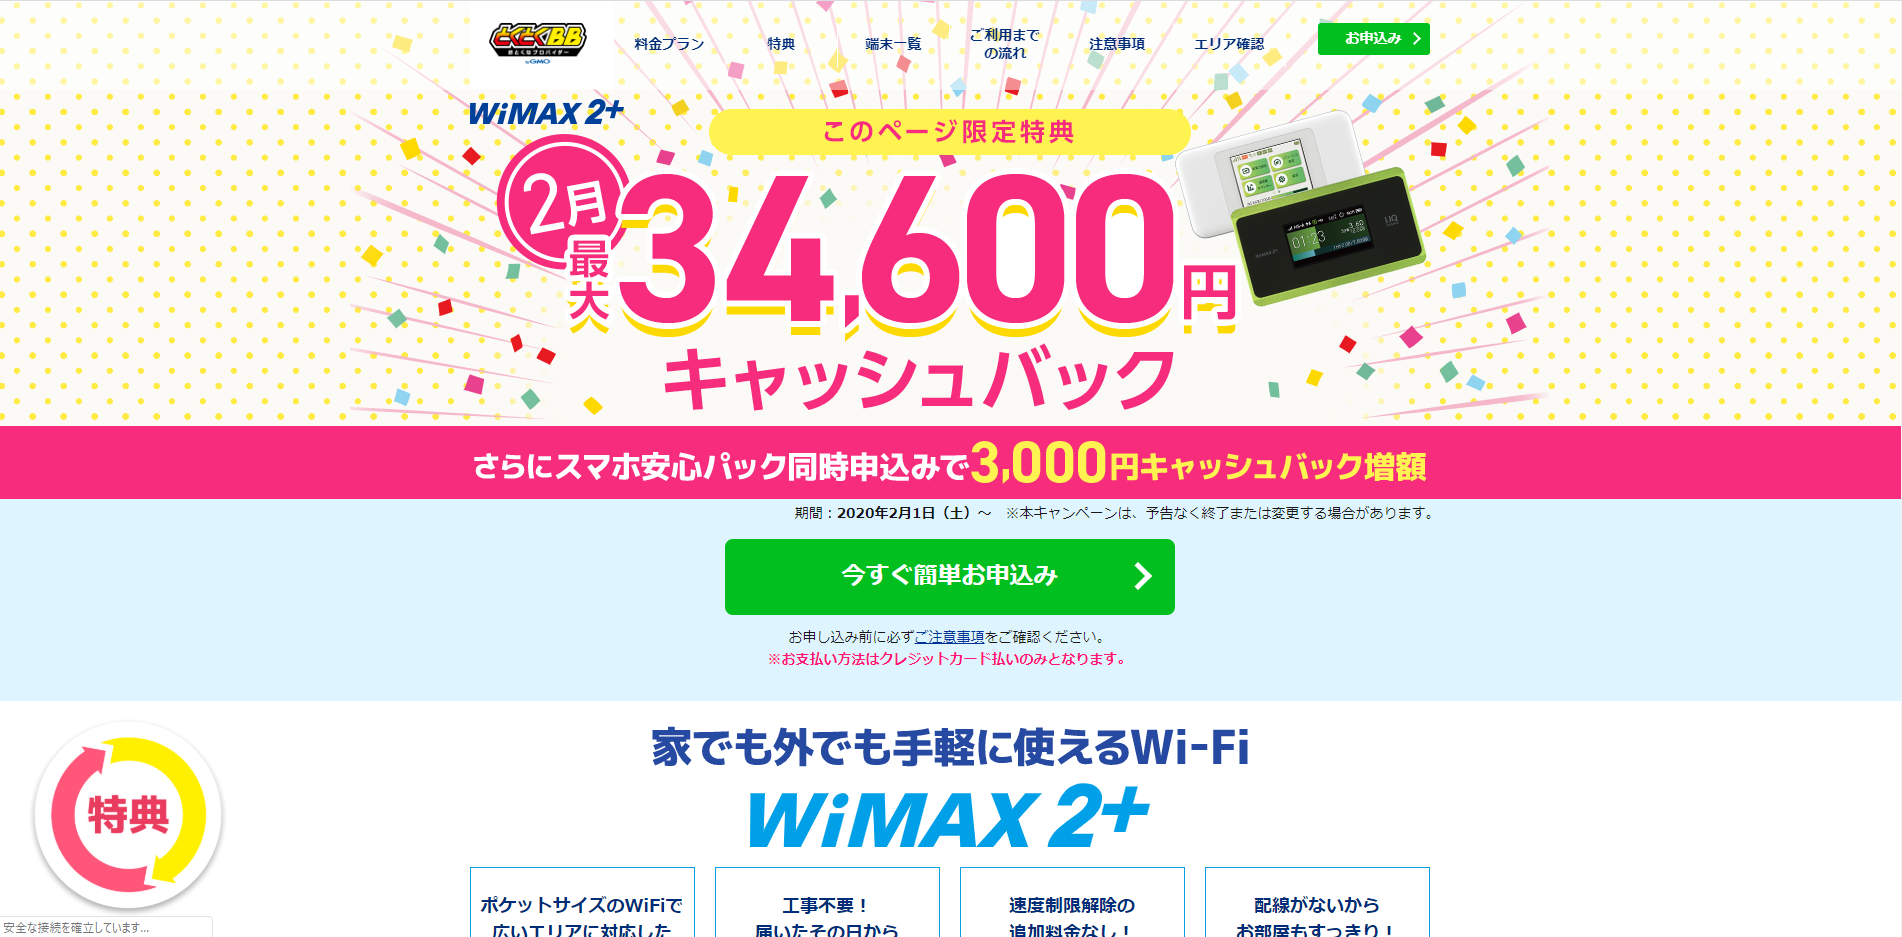 Wimax バック gmo キャッシュ